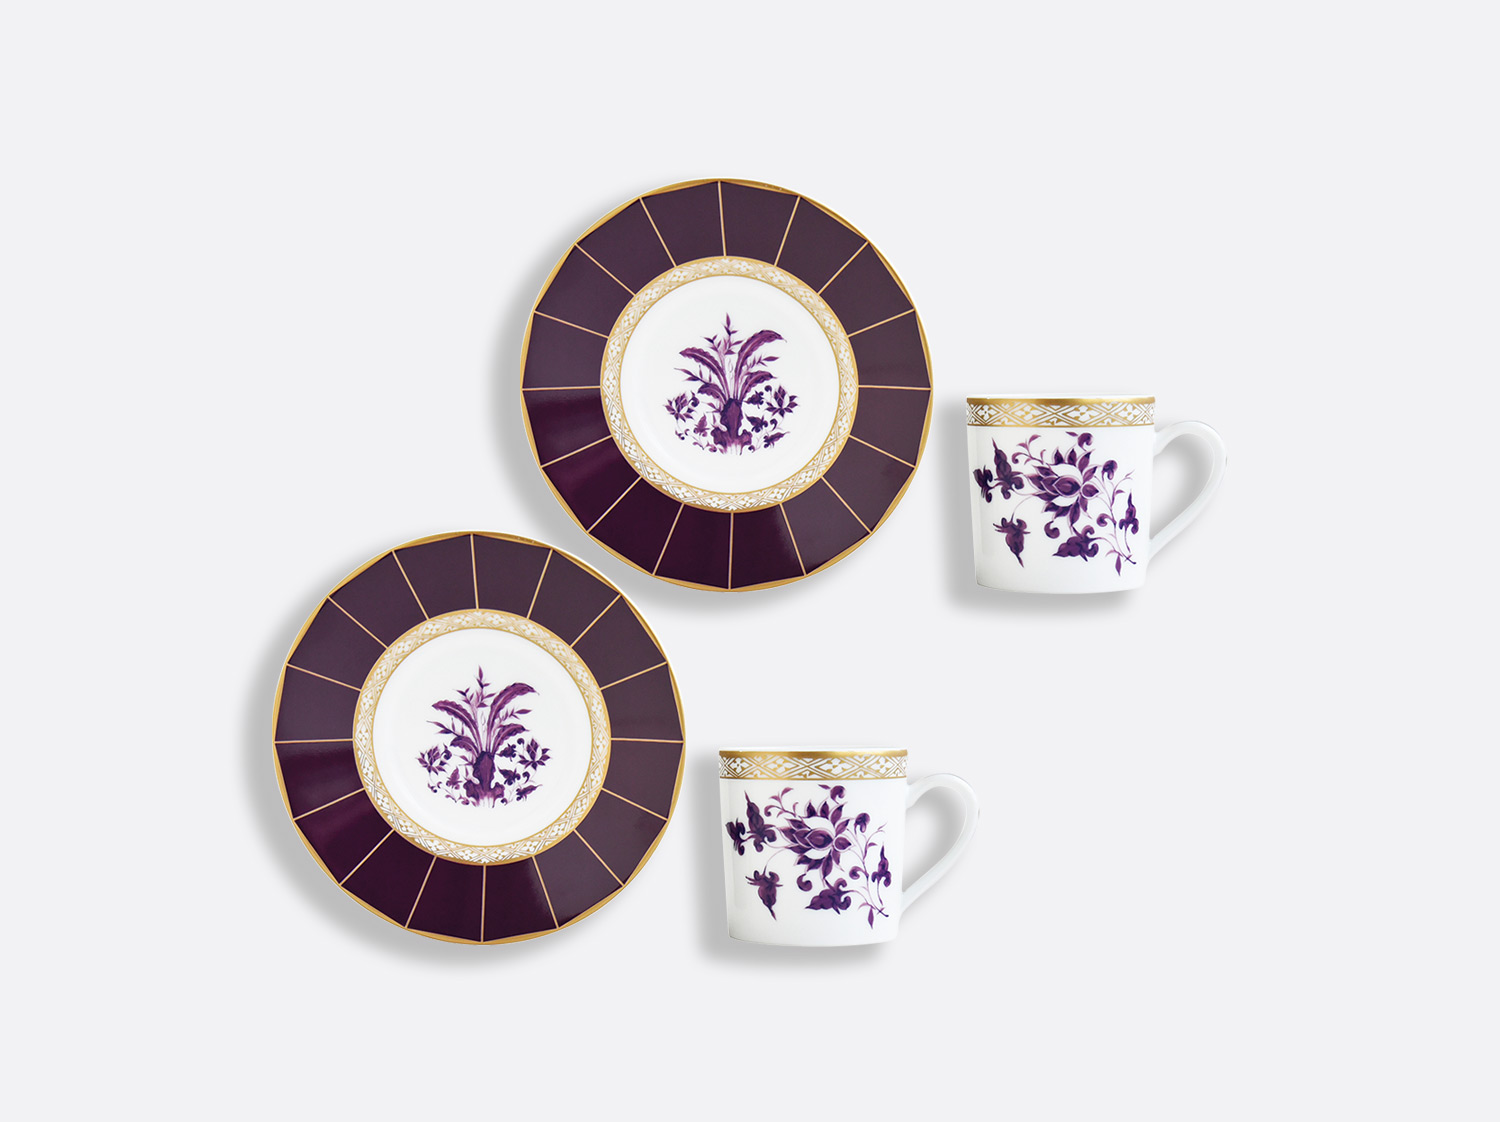 China Espresso cup and saucer gift box - 2.8 Oz - Set of 2 of the collection PRUNUS | Bernardaud